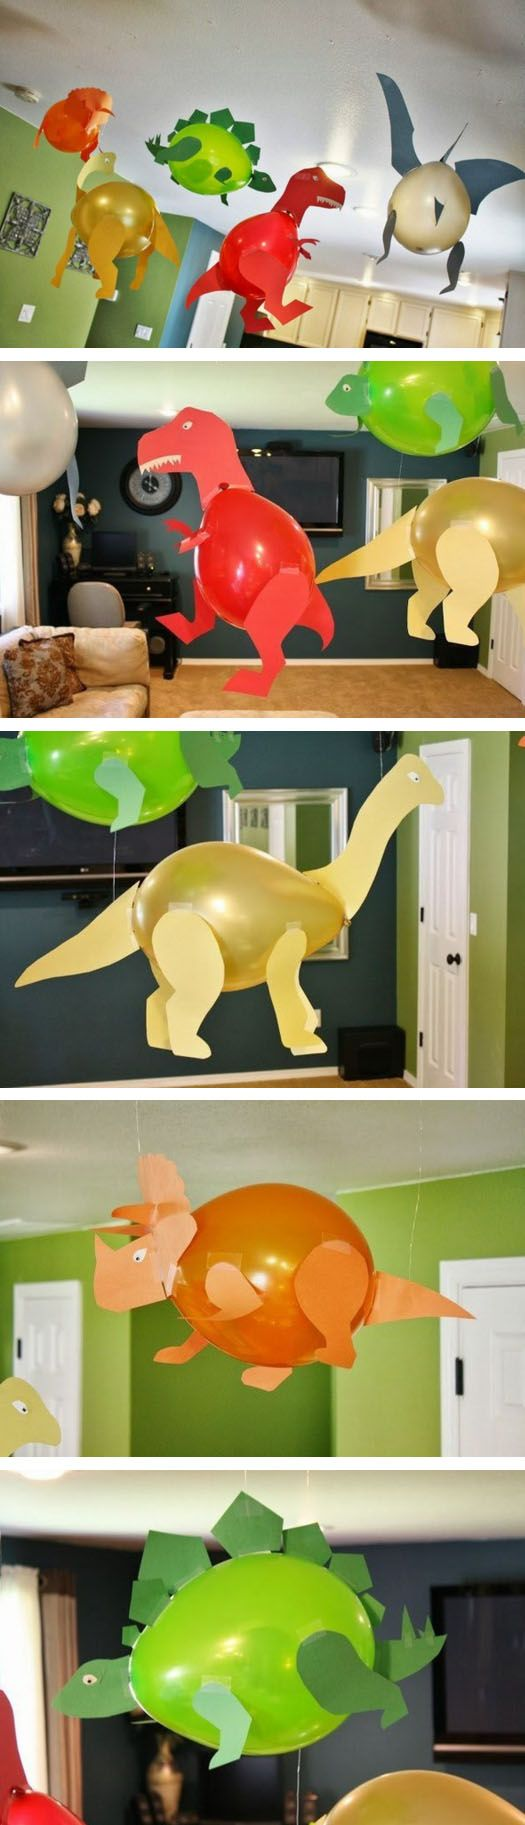 Balloons And Paper Is All You Need To Make Home Decor For Kids Party Dinosaurs